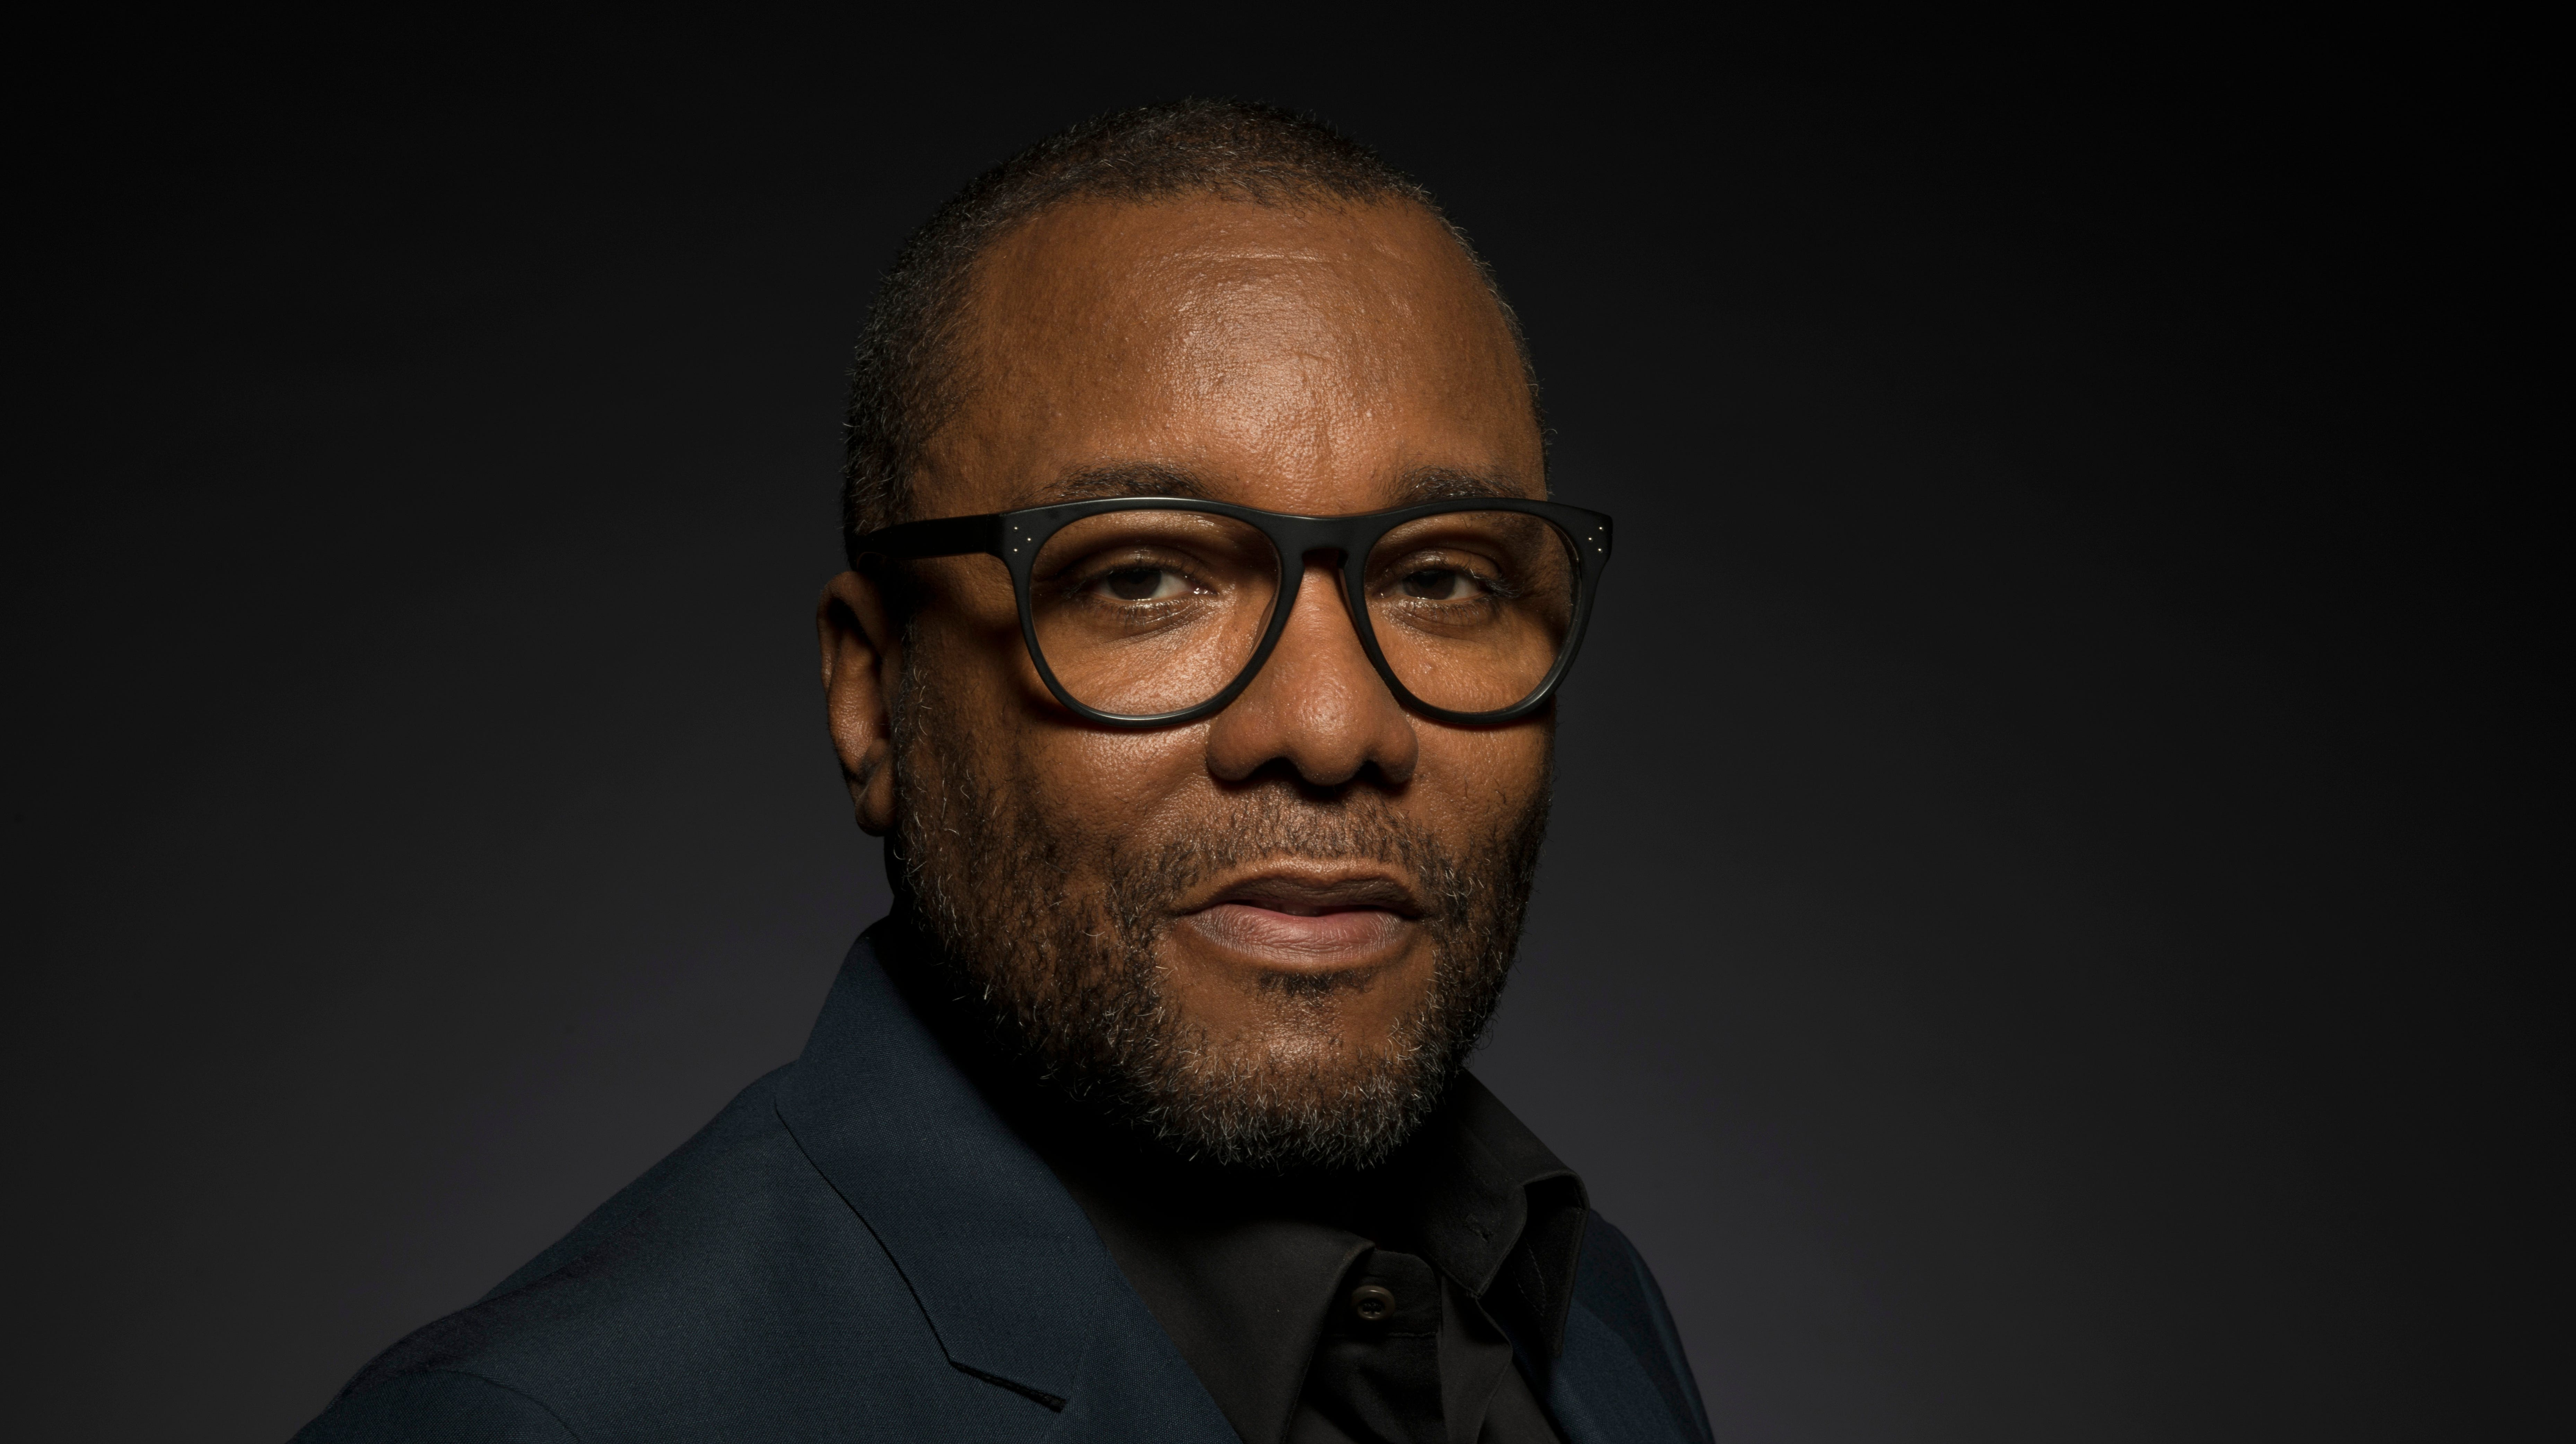 """FILE - In this Tuesday, Aug. 8, 2017 file photo, Lee Daniels, co-creator of the Fox series """"Empire,"""" poses for a portrait during the 2017 Television Critics Association Summer Press Tour at the Beverly Hilton in Beverly Hills, Calif. Daniels says the weeks since cast member Jussie Smollett was arrested and charged with fabricating a racist and homophobic attack have been """"a freakin' rollercoaster."""" Daniels says the situation nearly made him forget to tell audiences that the Fox drama returns to the air Wednesday, March 20, 2019. (Photo by Ron Eshel/Invision/AP, File) ORG XMIT: CAET373"""